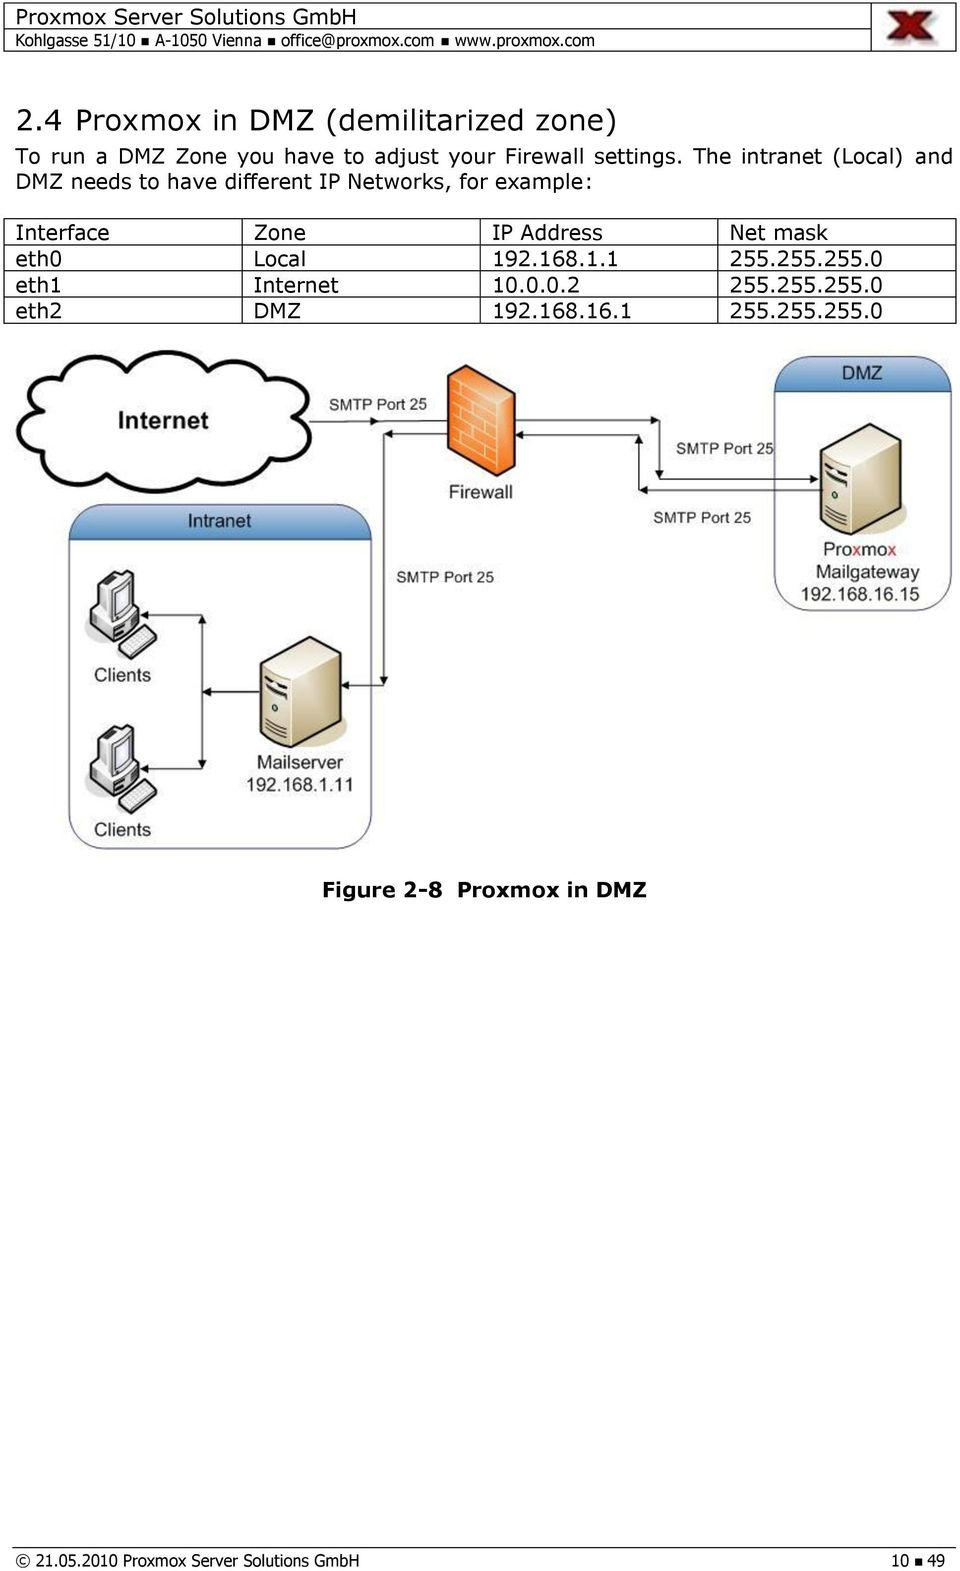 Proxmox Mail Gateway Deployment Guide - PDF